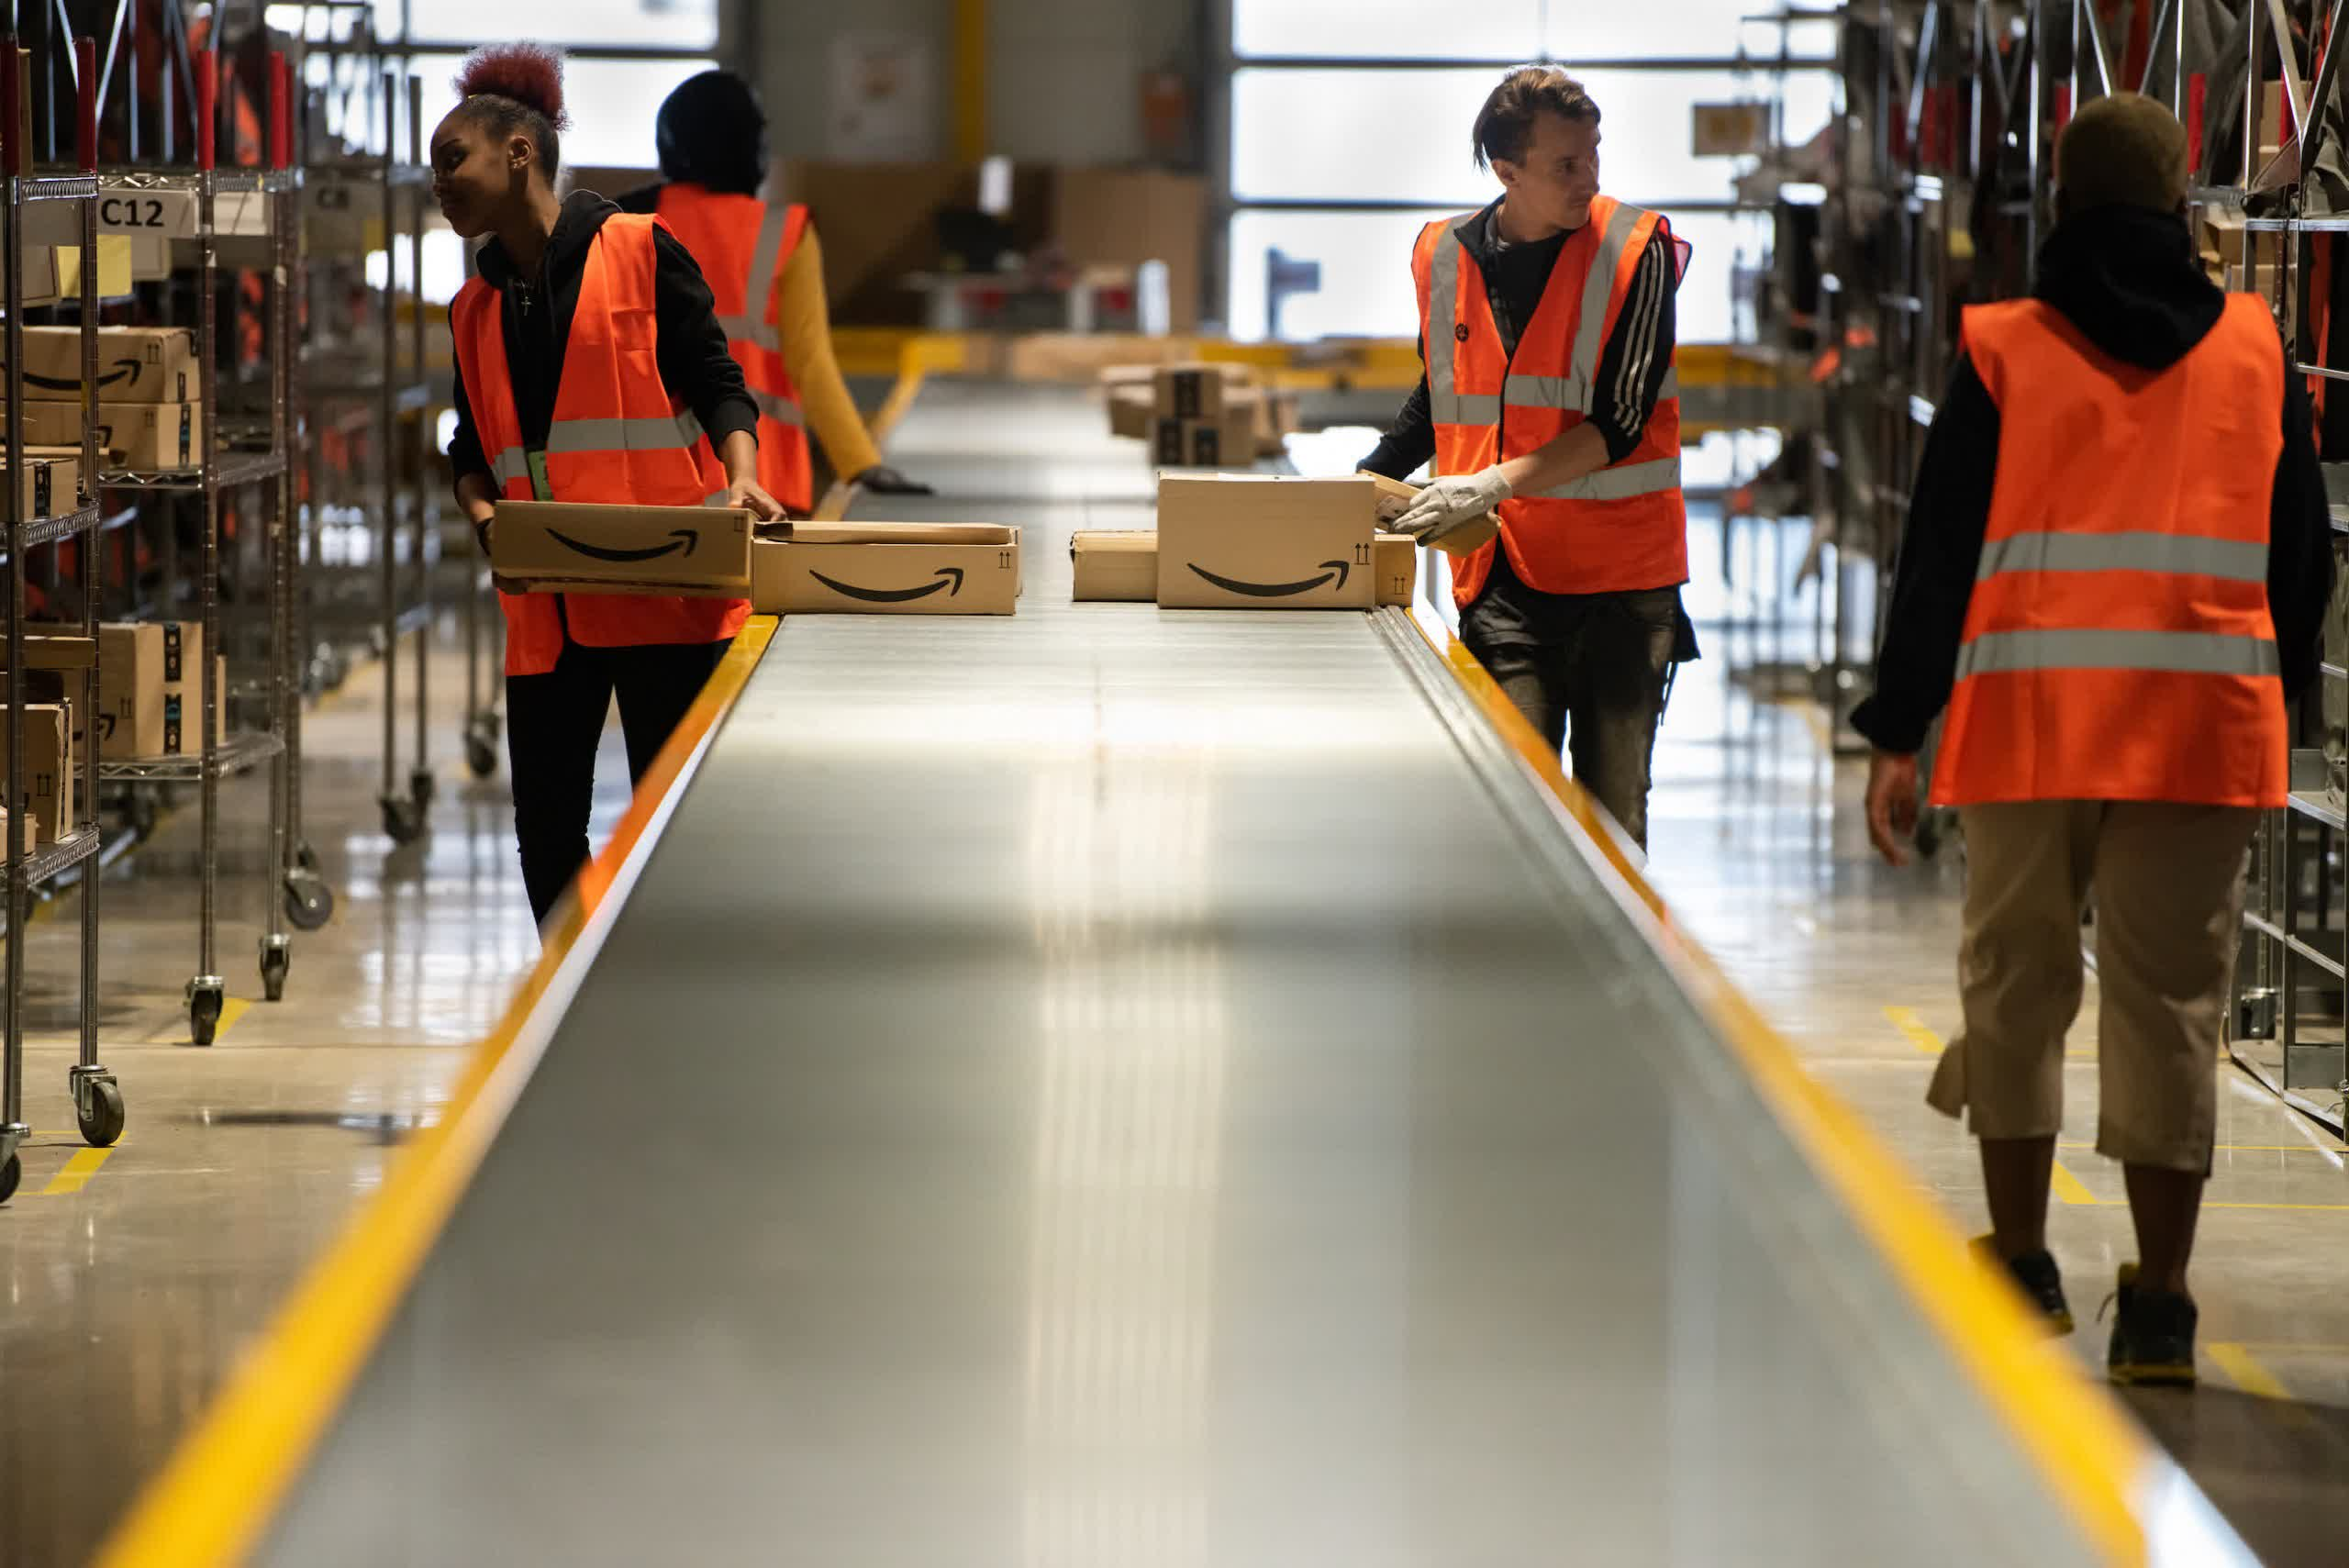 Amazon has hired 2,800 employees per day since July